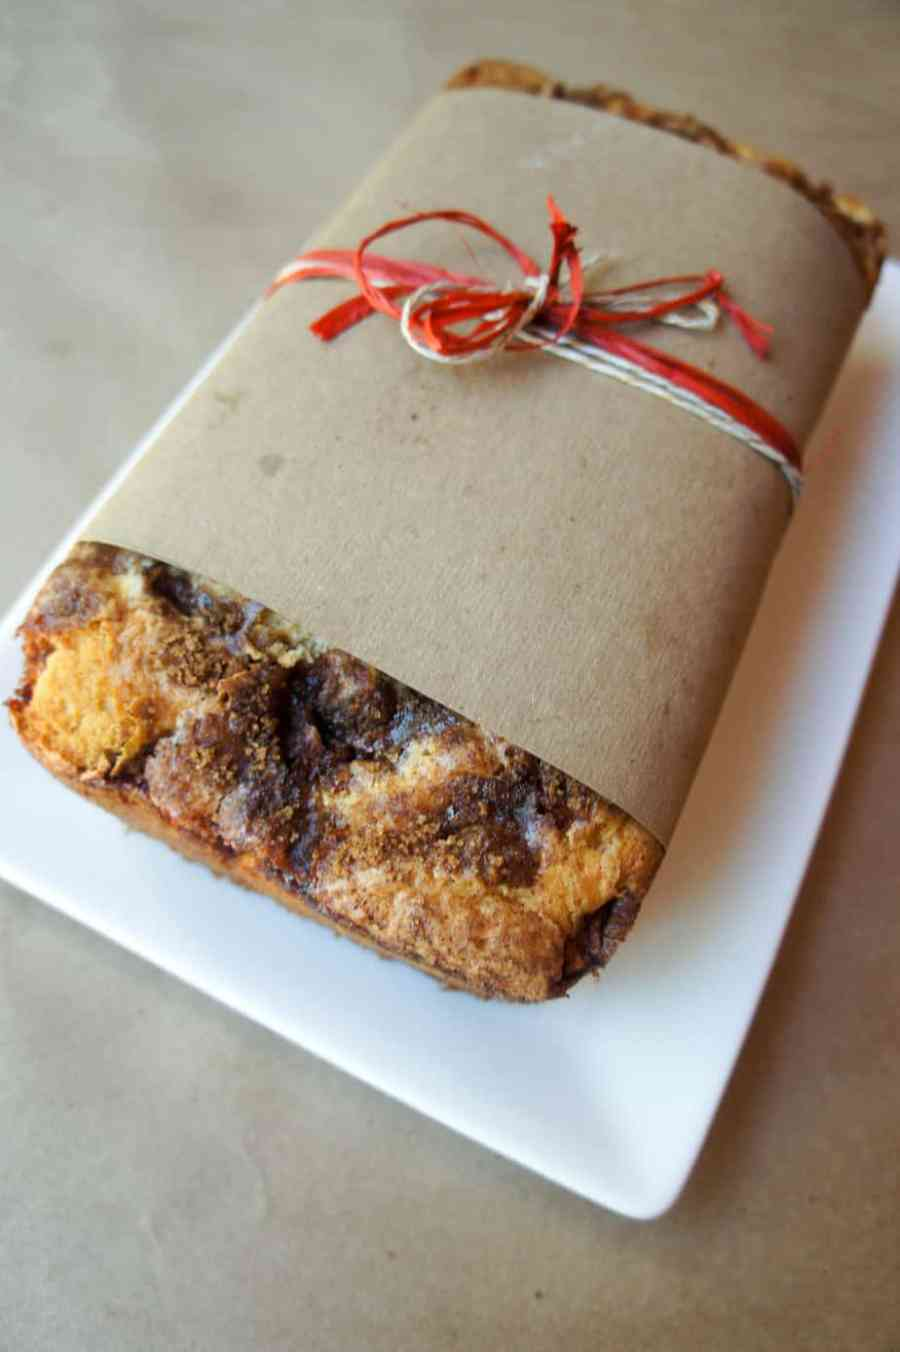 Fall Harvest Apple Bread is the perfect treat for a chilly evening. Serve on Thanksgiving with family or as a baked goods gift!